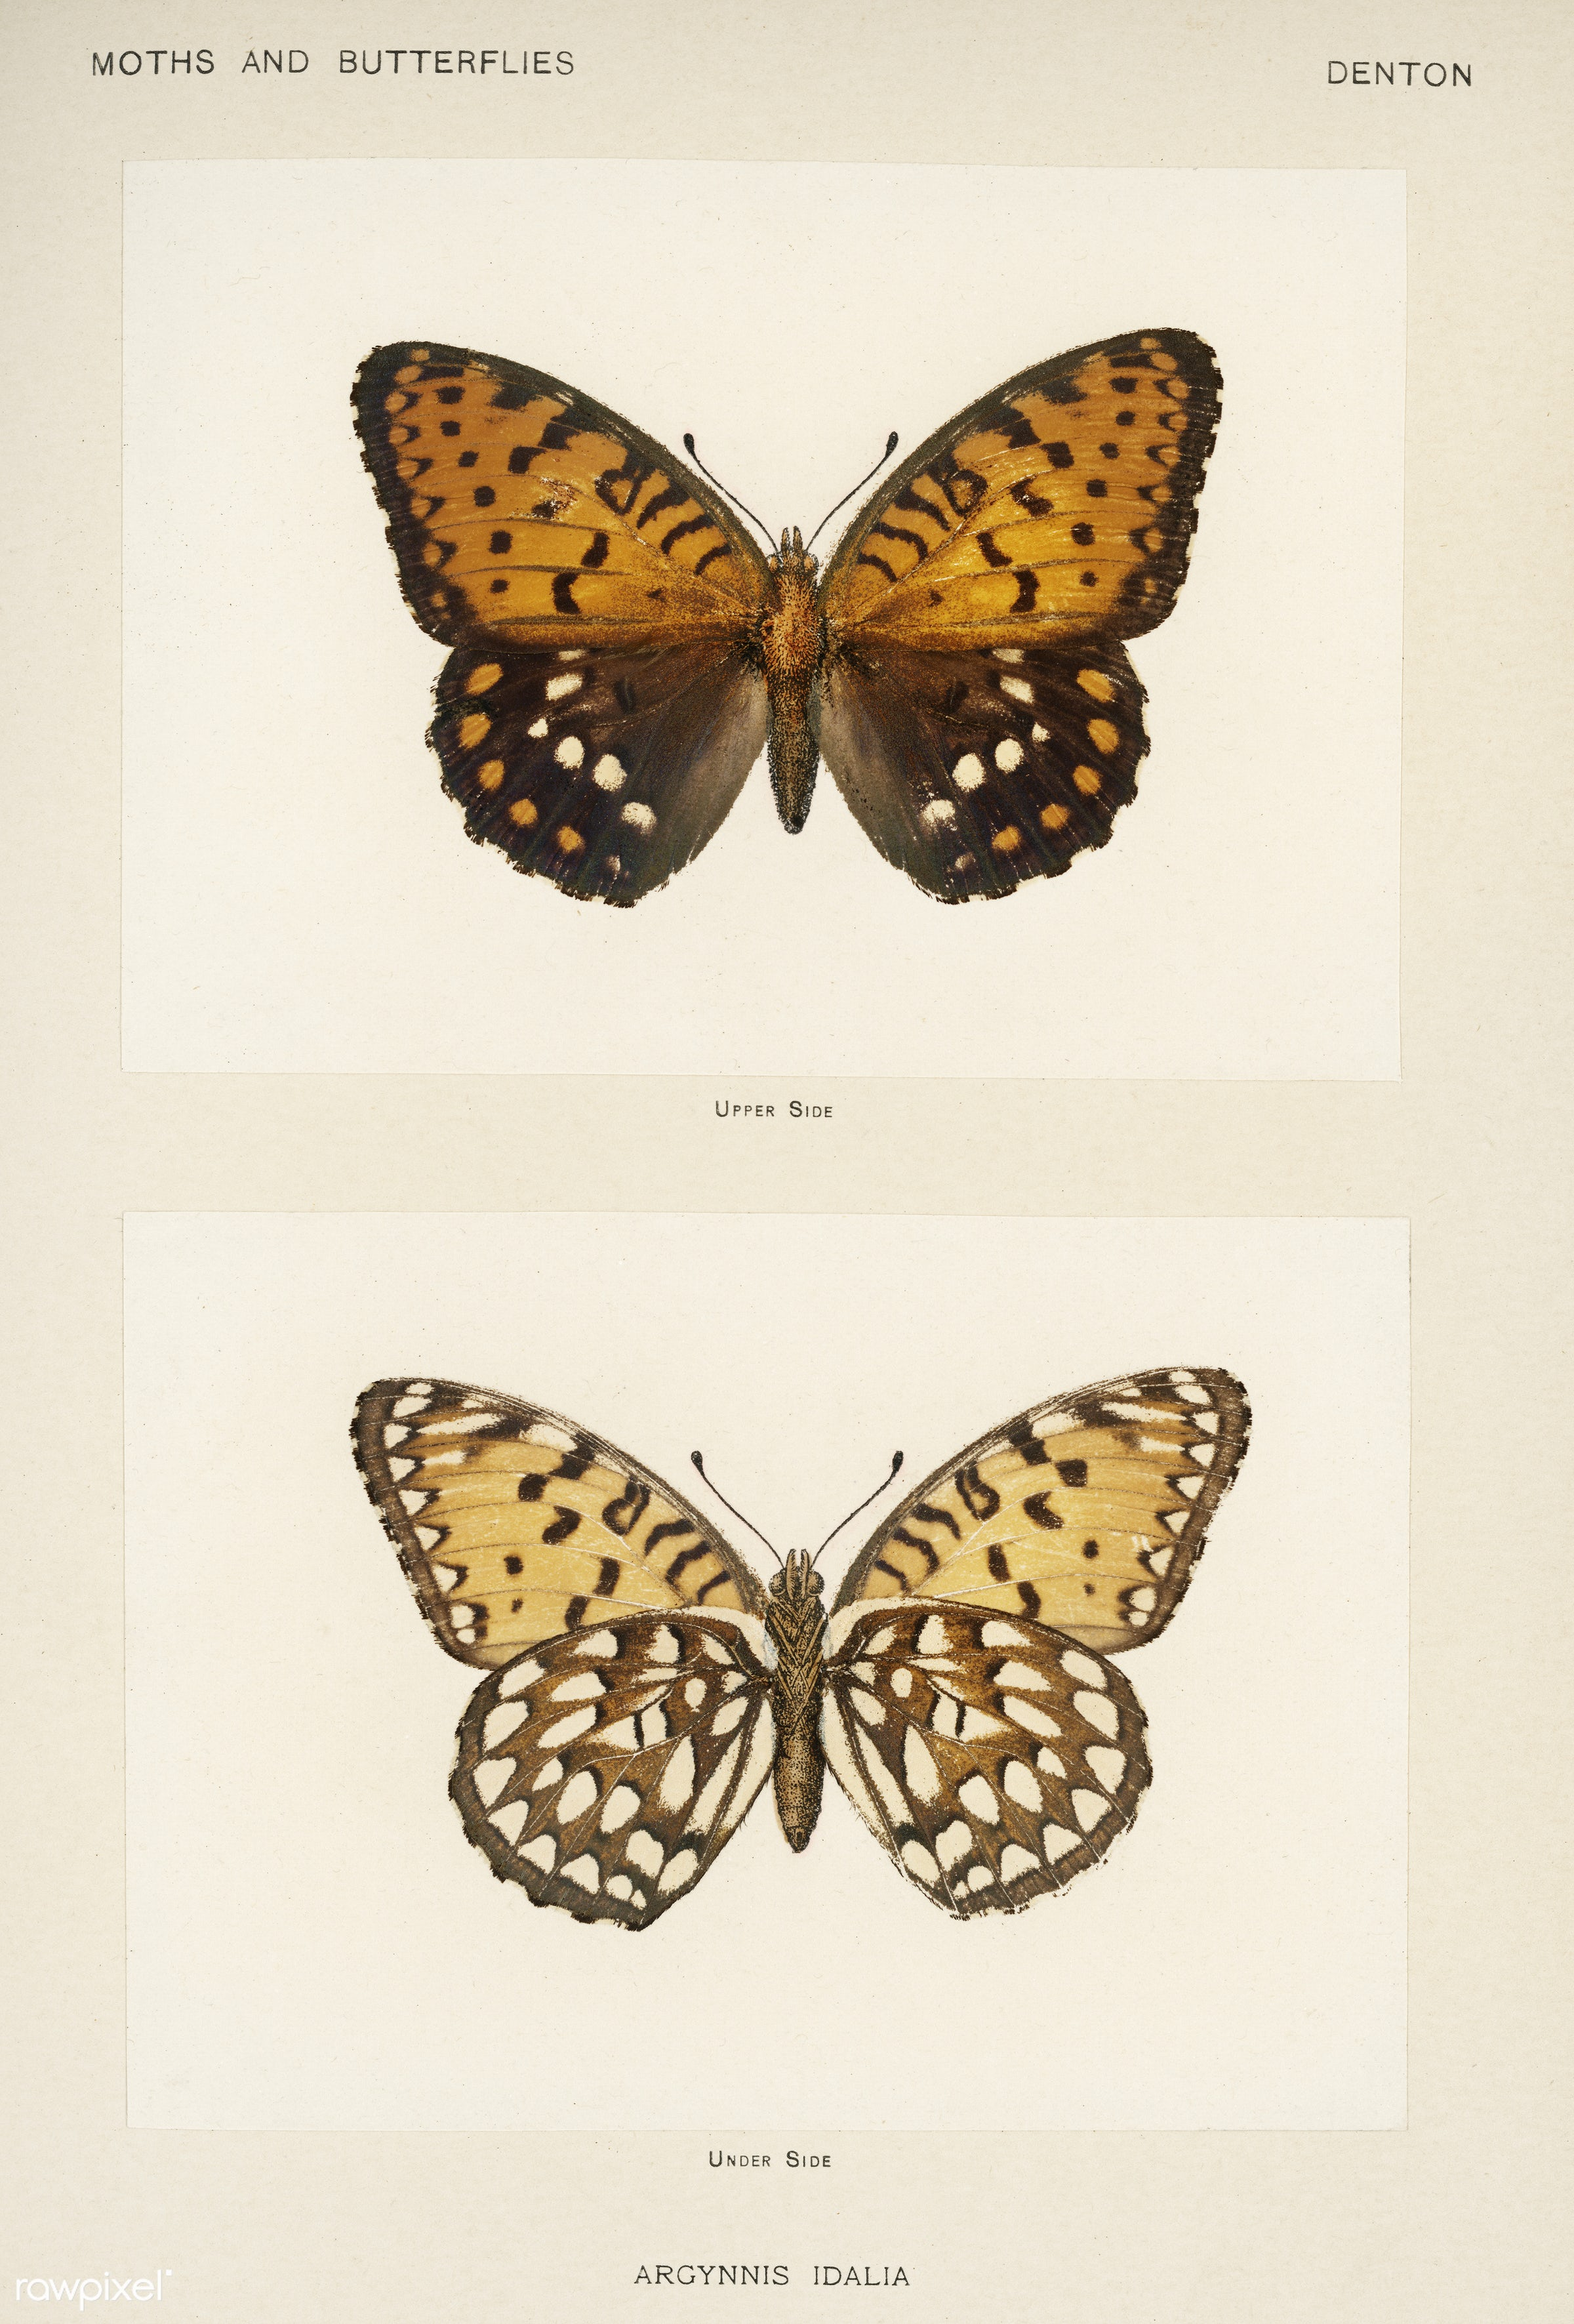 Regal Fritillary (Argynnis Idalia) from Moths and butterflies of the United States (1900) by Sherman F. Denton (1856-1937)....